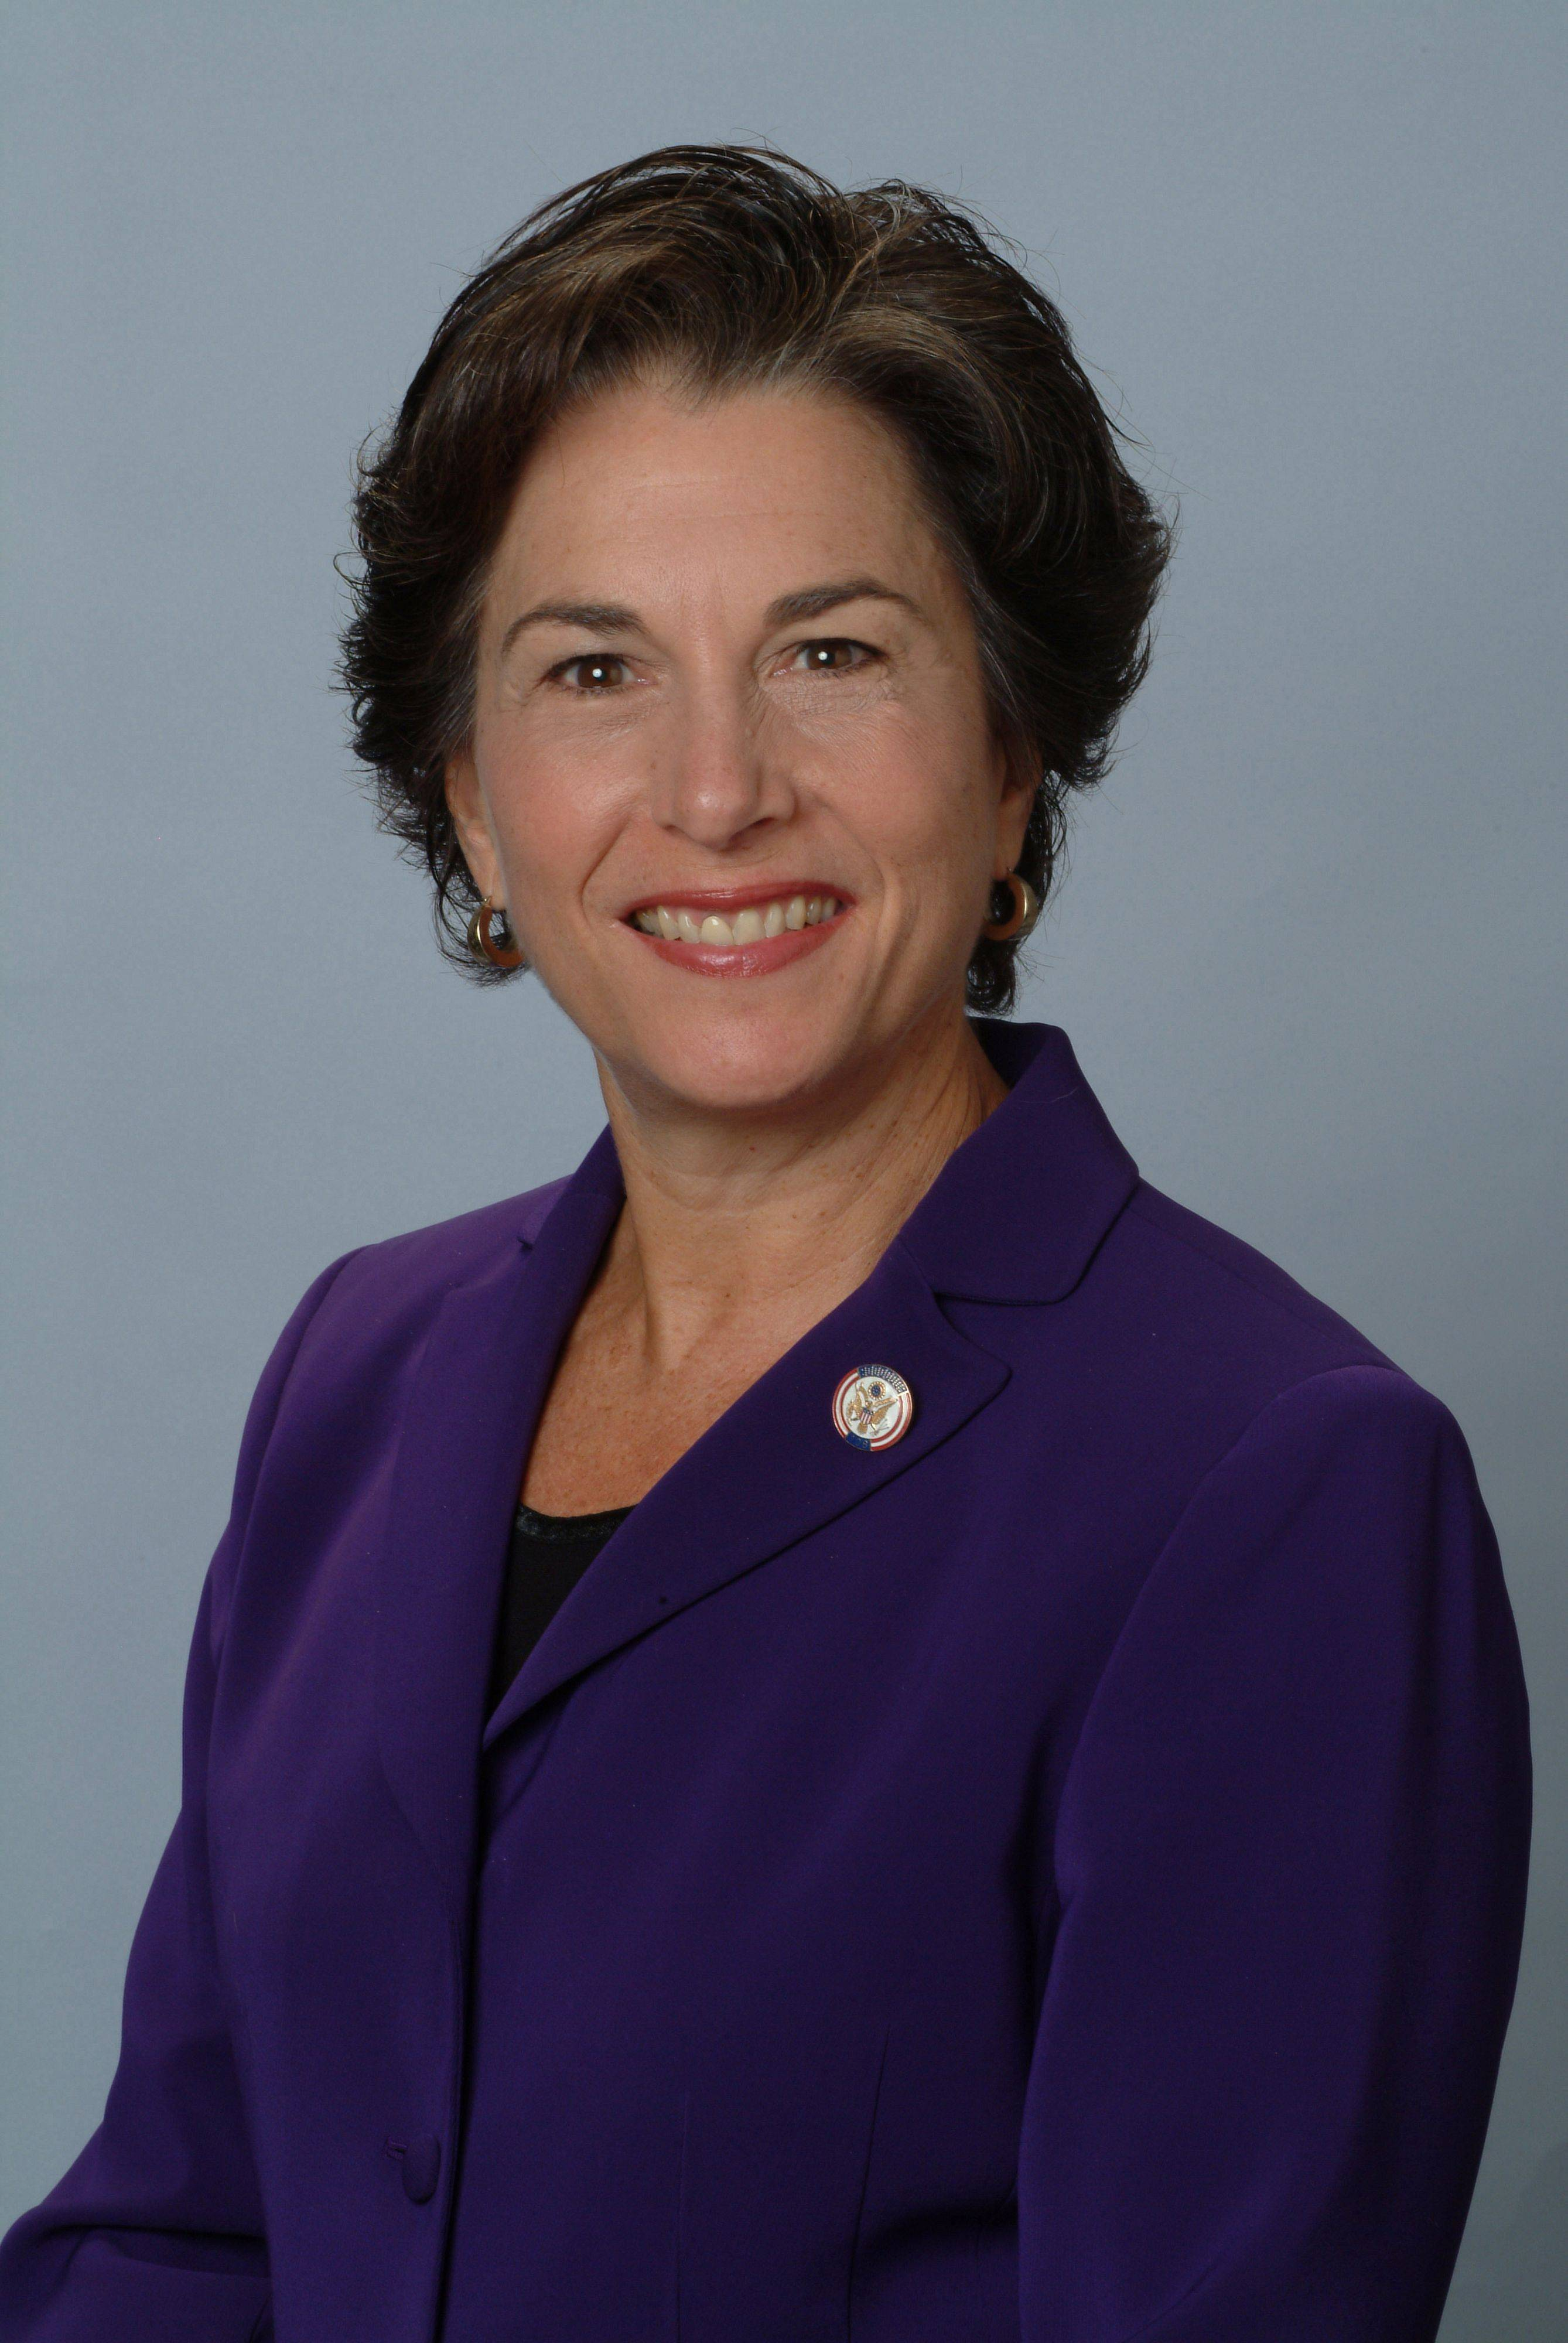 U.S. Rep. Jan Schakowsky, a Democrat from Evanston